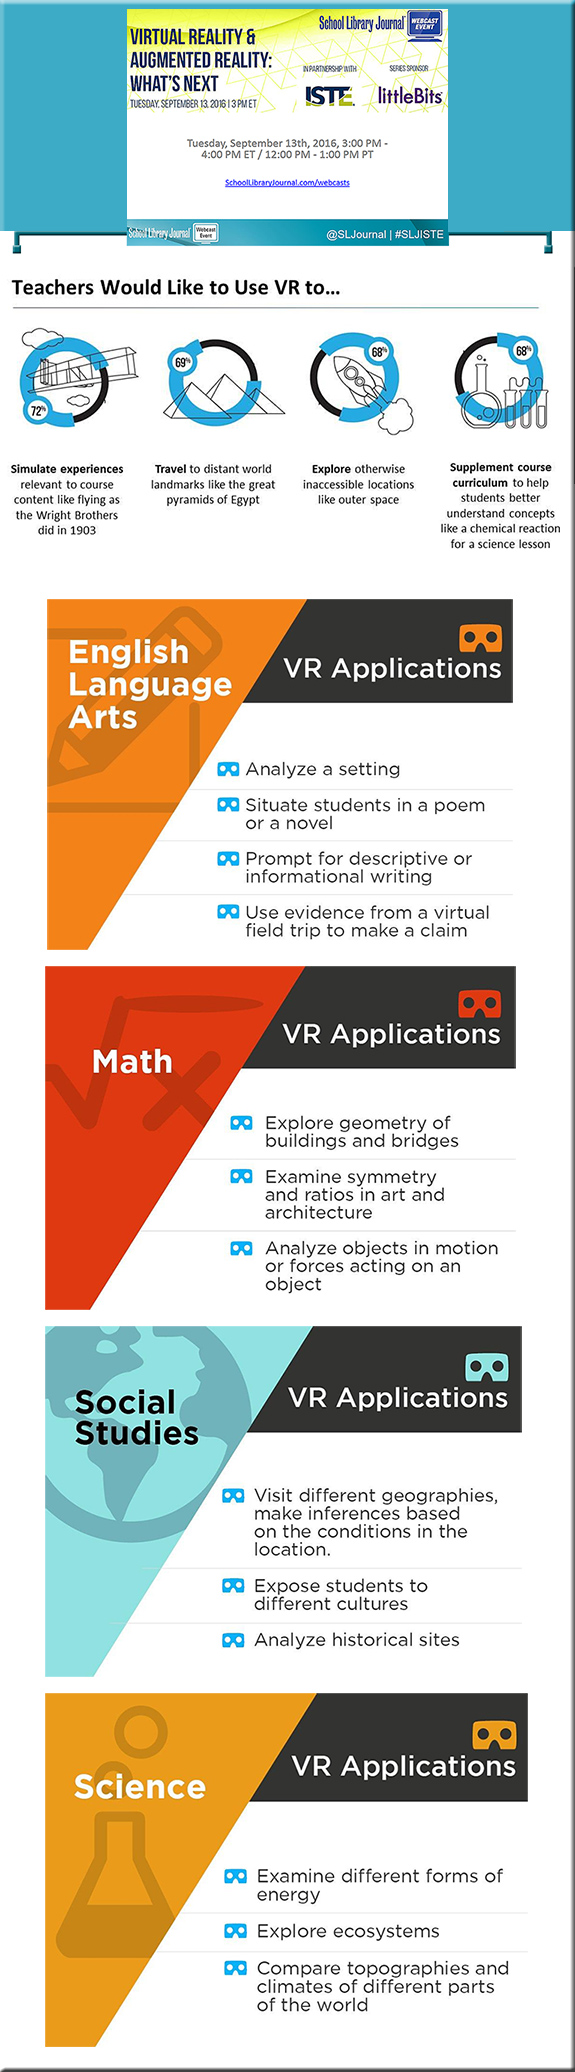 vr-in-education-thejournal-sept2016